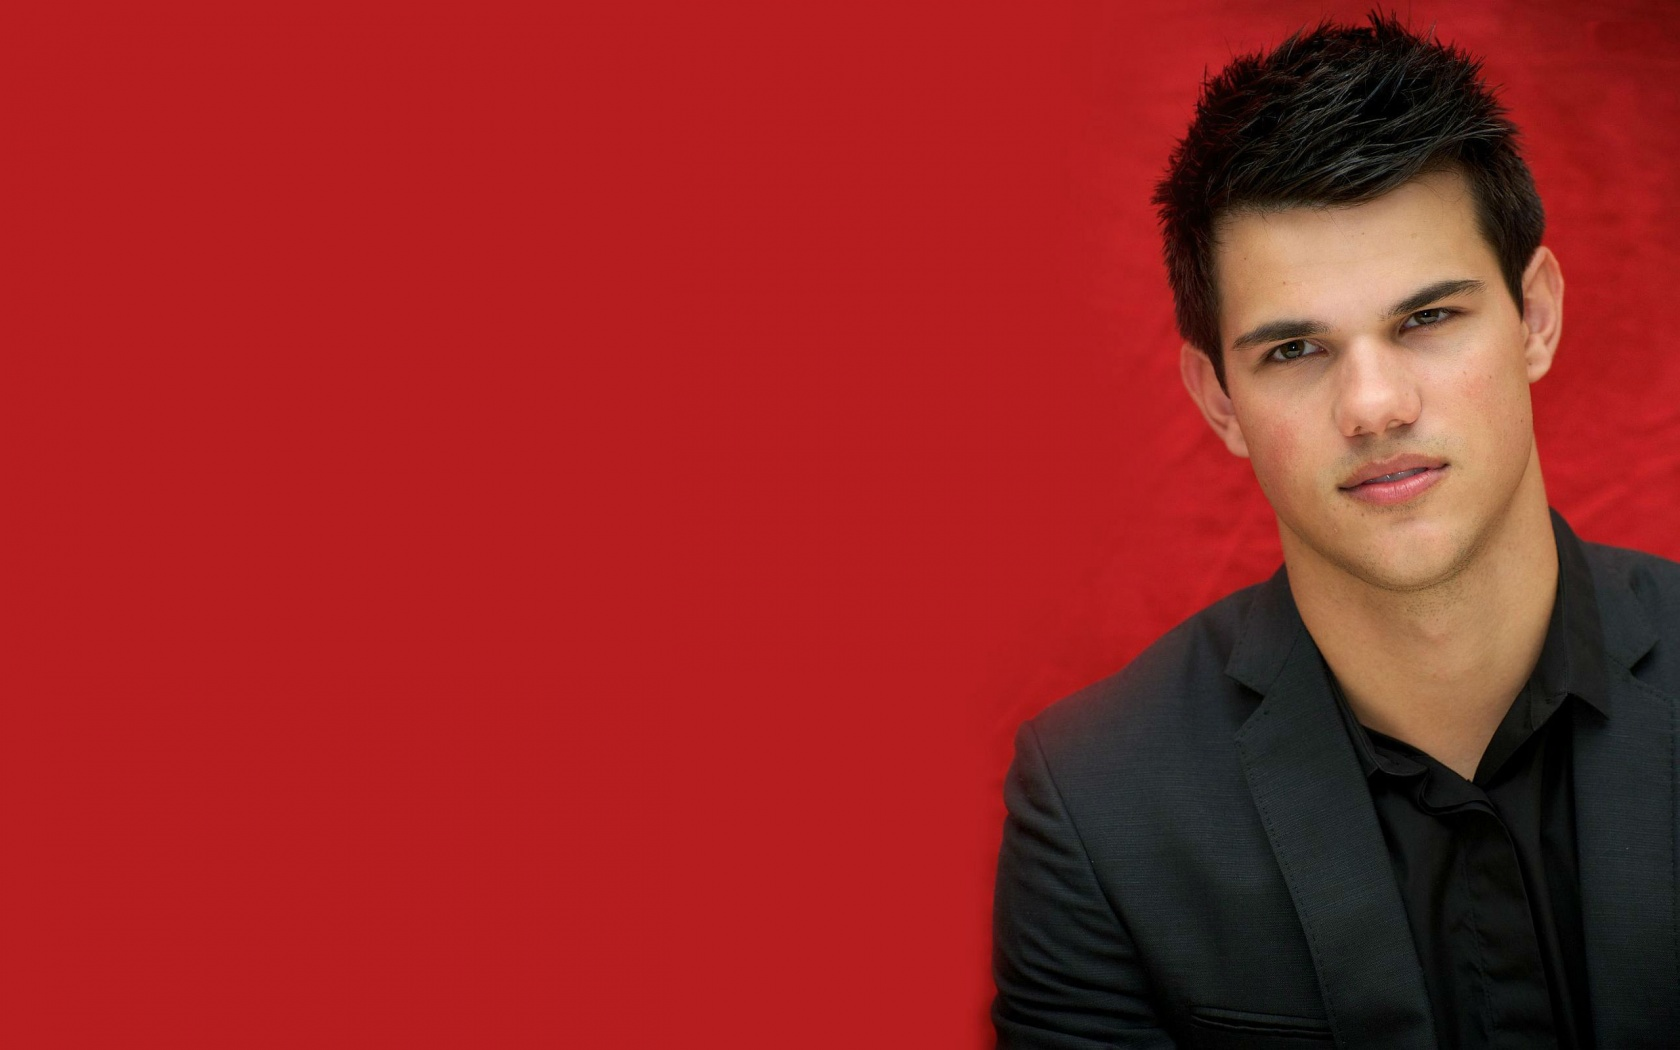 taylor lautner Taylor daniel lautner was born in grand rapids, michigan, to deborah, a software company worker, and daniel lautner, a pilot for midwest airlines he, and younger sister makena, were raised in a.